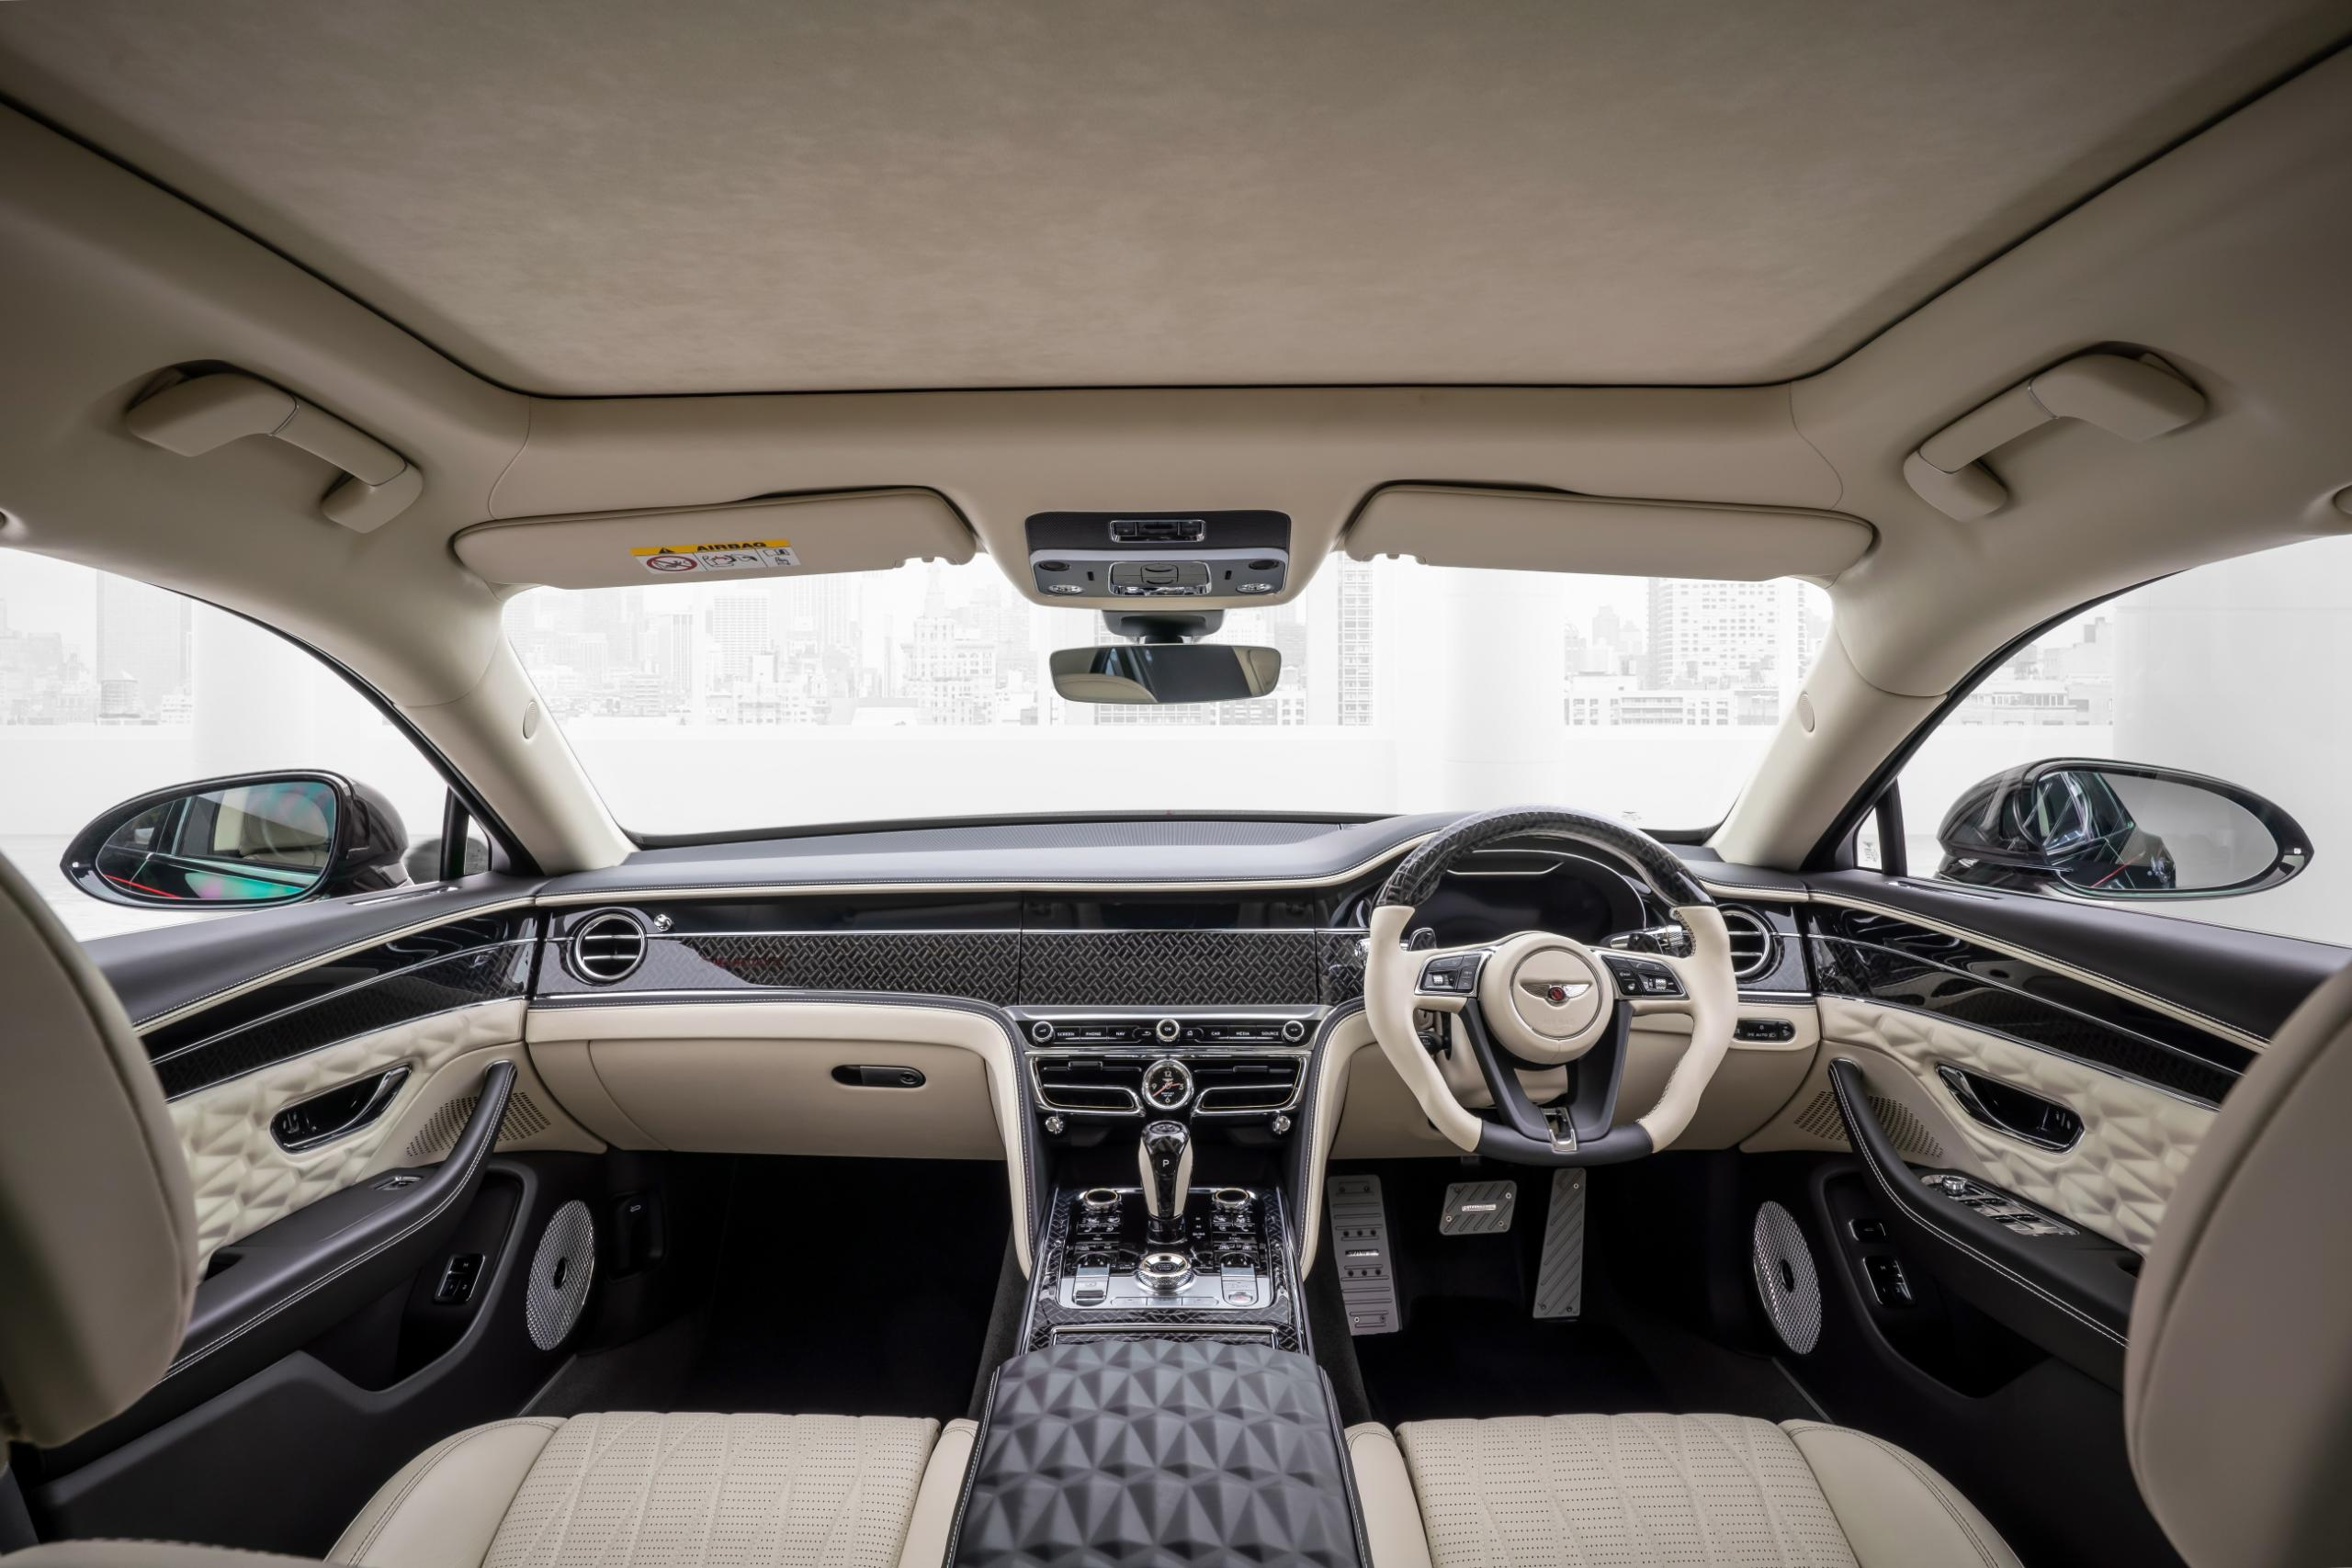 mansory bentley flying spur body kit interior front view steering wheel